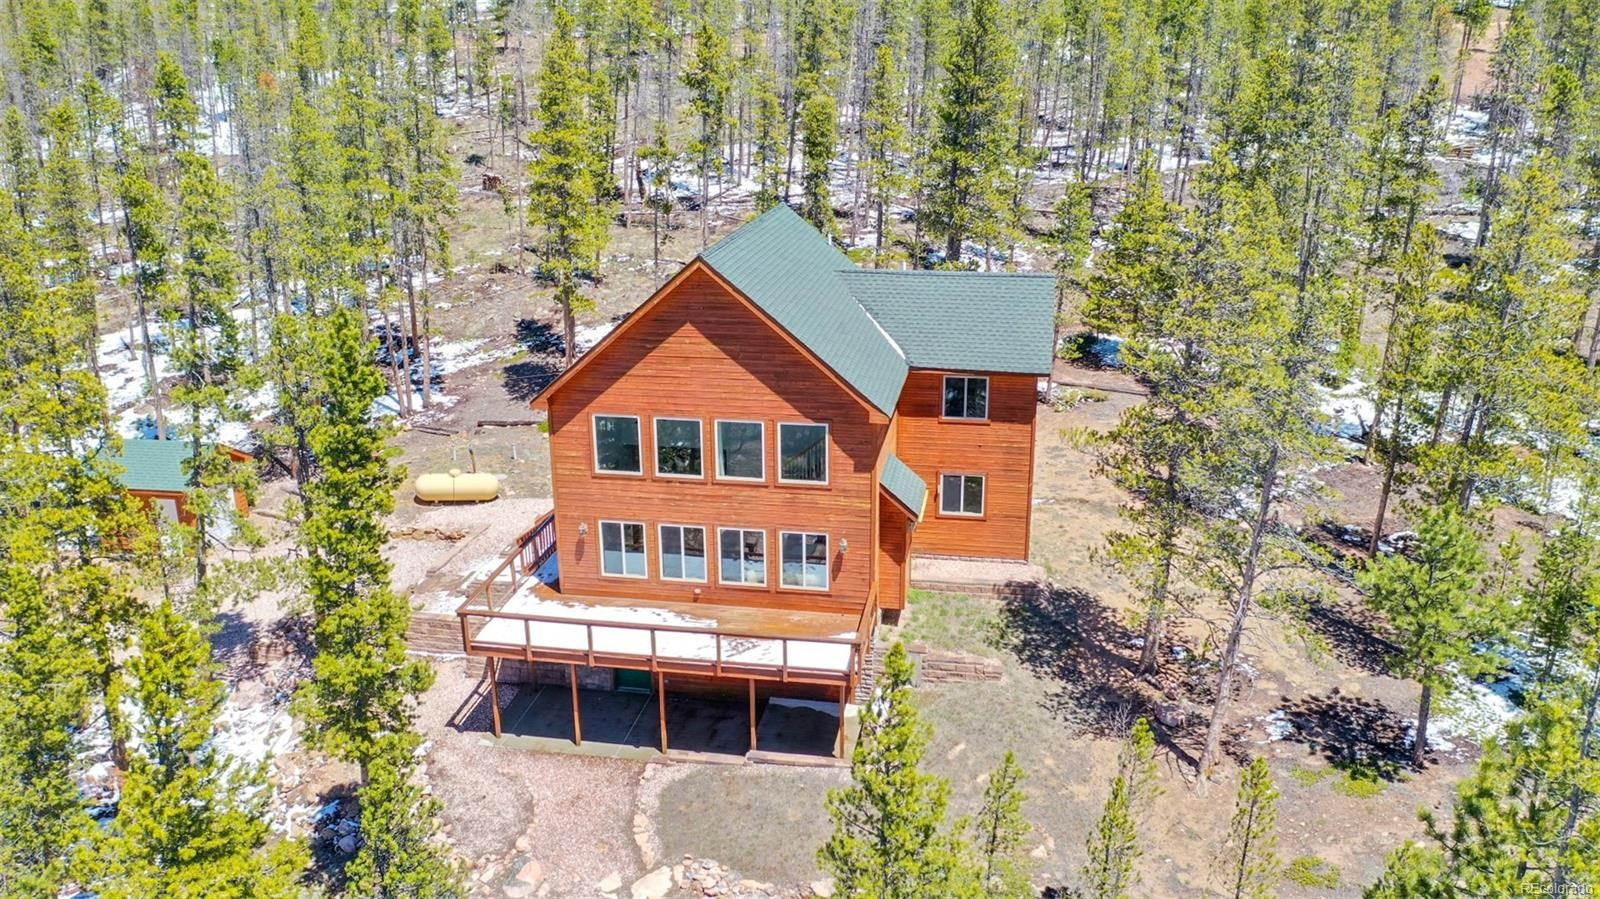 MLS# 8881559 - 1 - 70  Cocopa Way, Red Feather Lakes, CO 80545